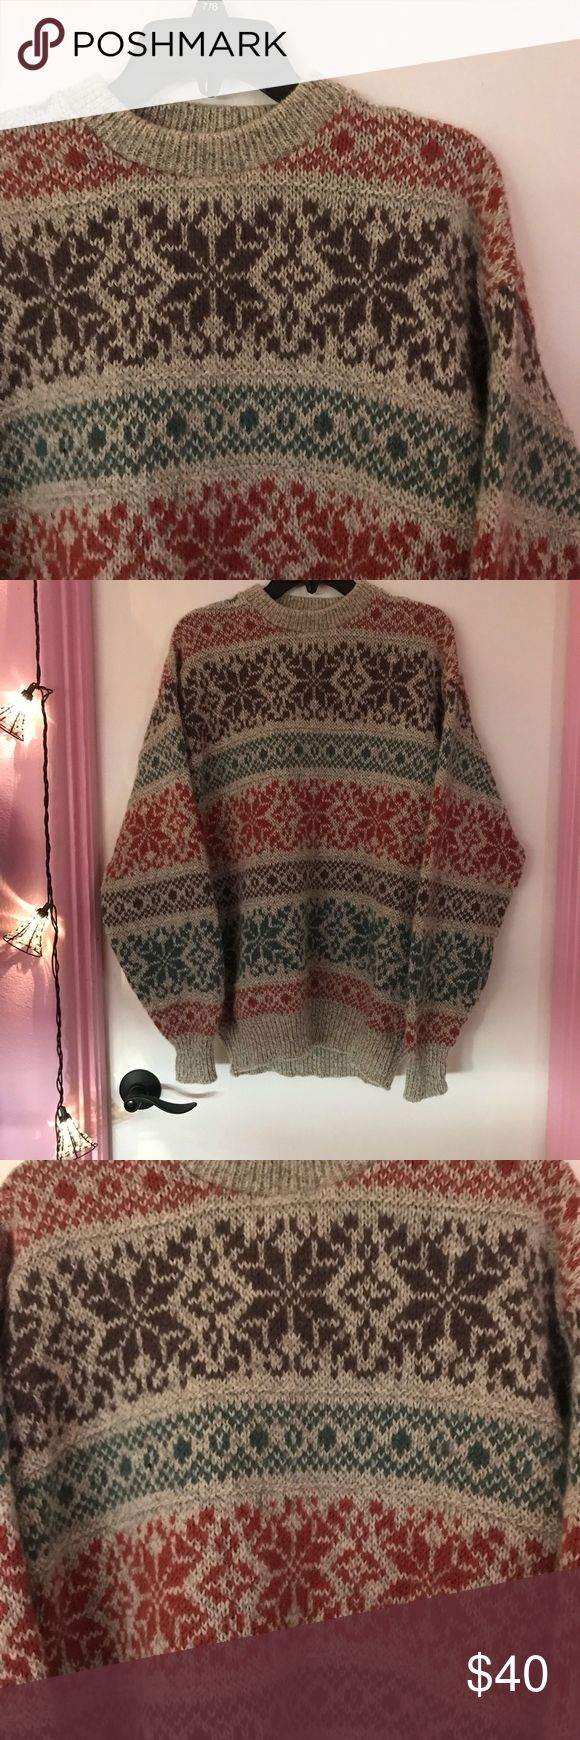 Anthropologie Fair Isle Wool Crewneck The warmest Anthropologie fair isle Crewneck would best fit a variety of sizes based on a desired look. Tag has been cut out. Received as a Christmas gift last year for a trip in a colder climate and it looks super cute with bean boots or sorel boots and jeans. A fabulous addition to your winter wardrobe. This is Crewneck looks like something Kiel James Patrick (KJP) would wear and sell. TBundle up! Anthropologie Sweaters Crew & Scoop Necks